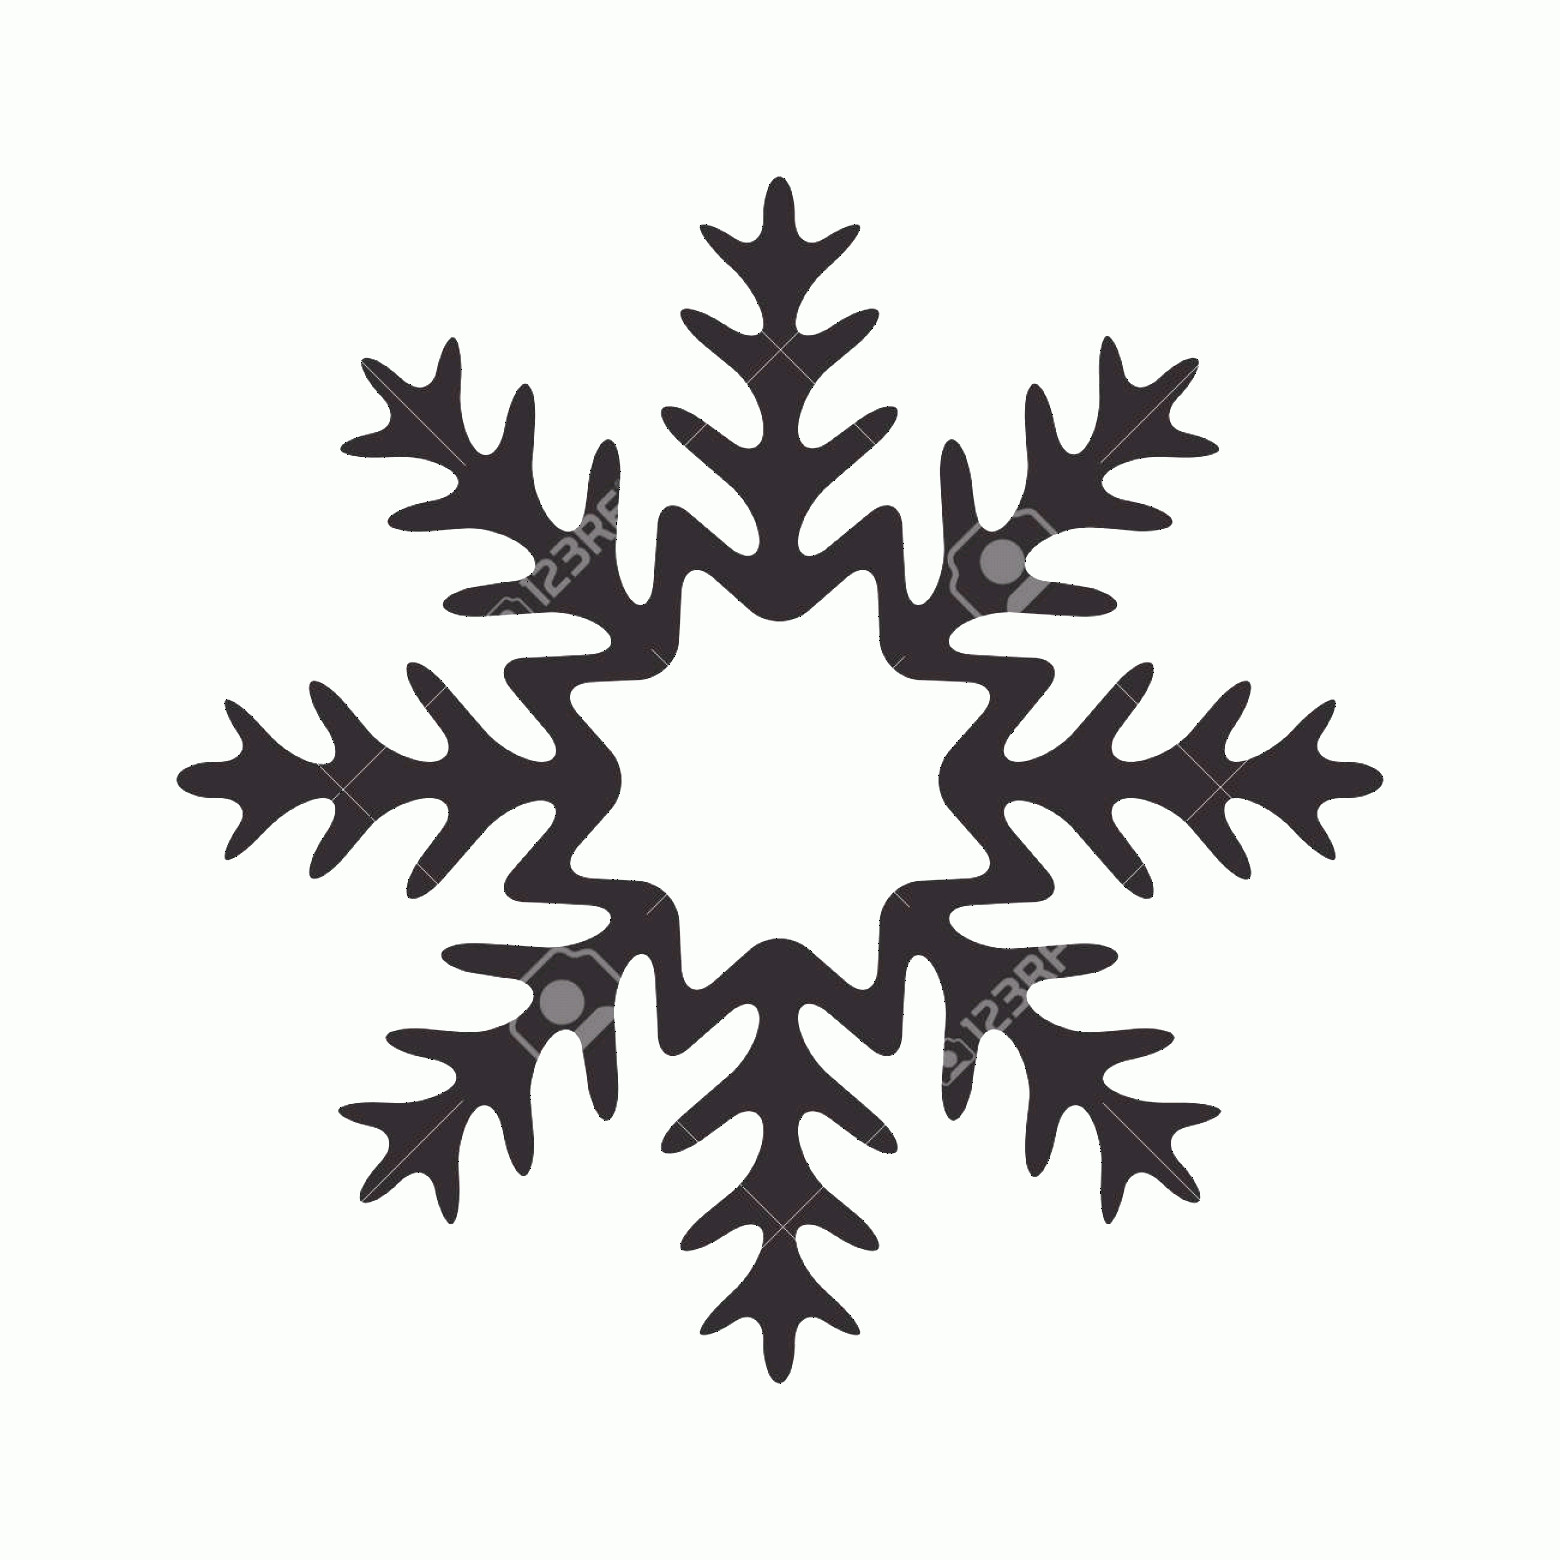 Simple Black Vector Snowflake: Photostock Vector Snowflake Icon Christmas And Winter Theme Simple Flat Black Illustration On White Background